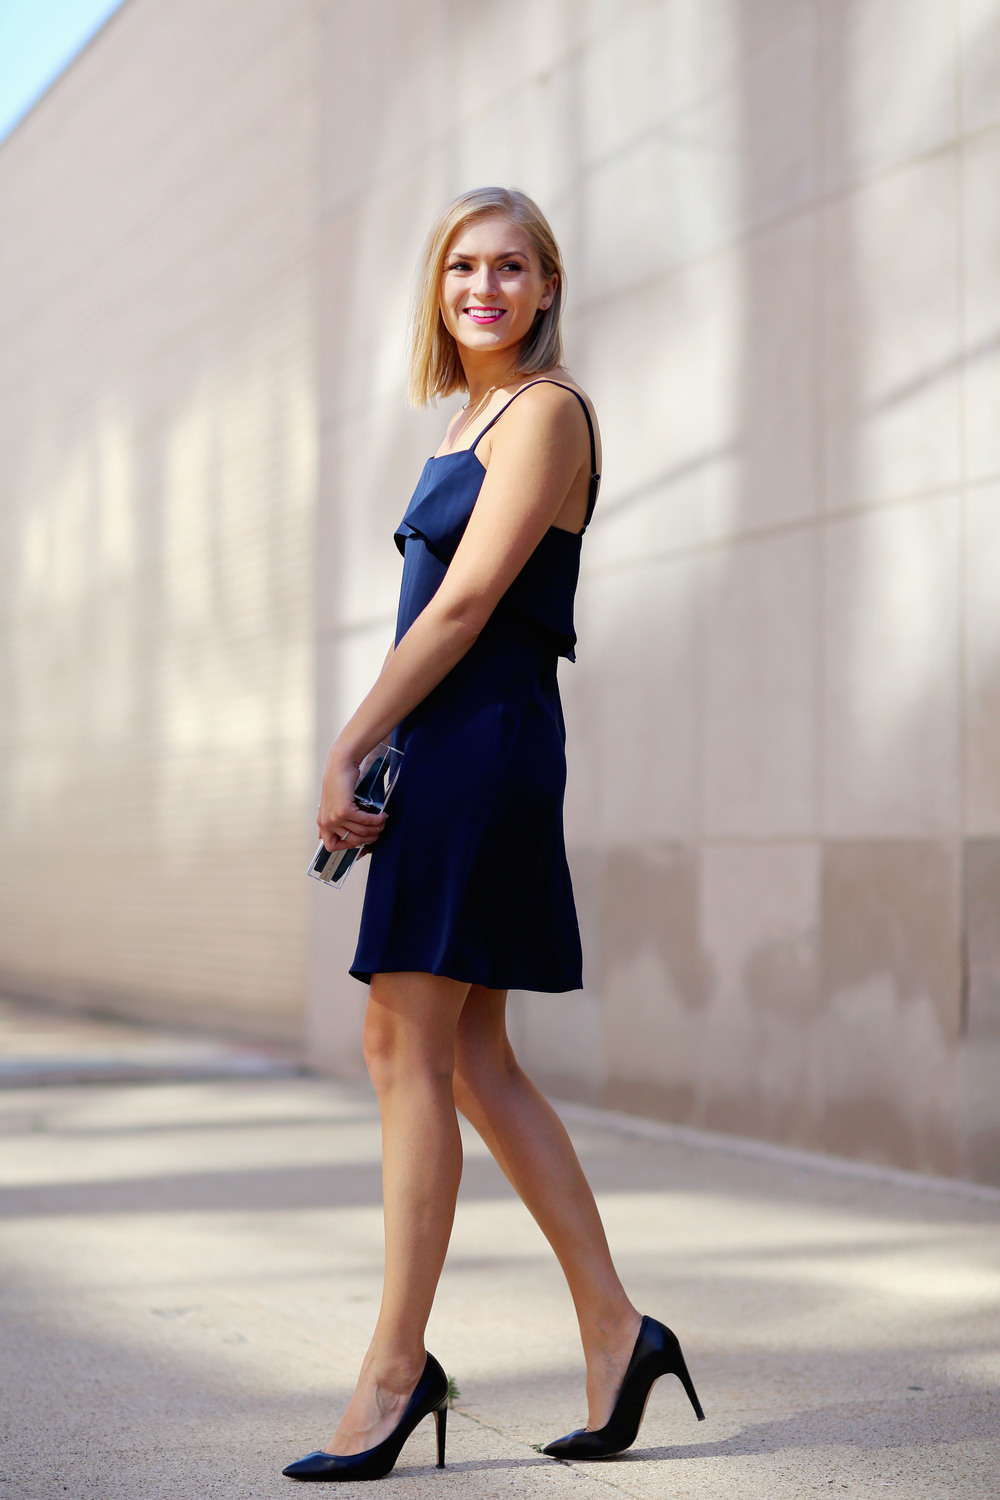 ali stone in a slip dress and pumps.jpg